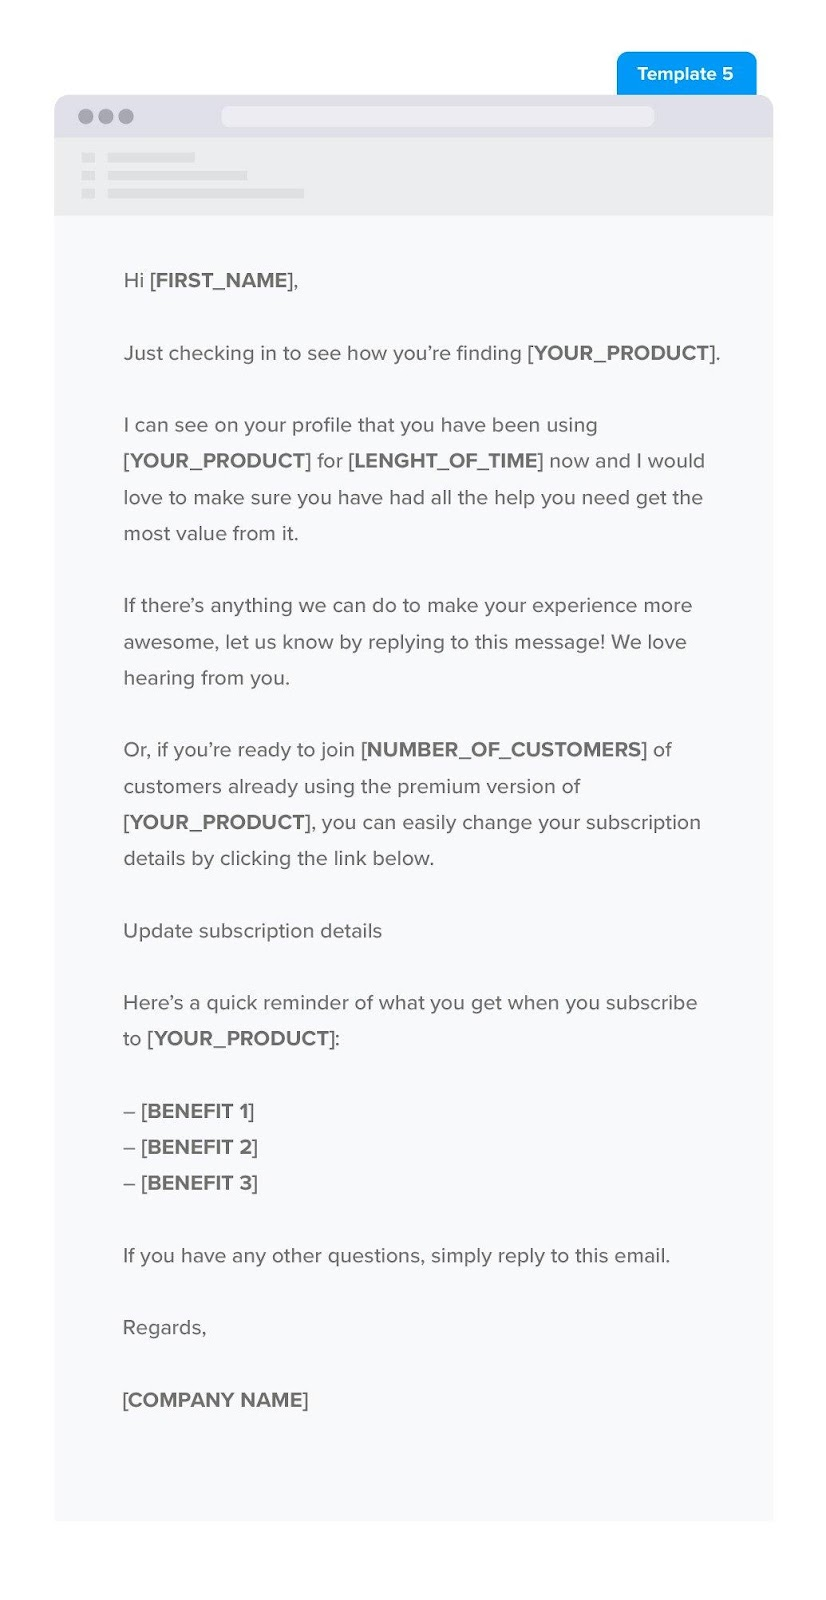 Subscribe to paid plan follow up email